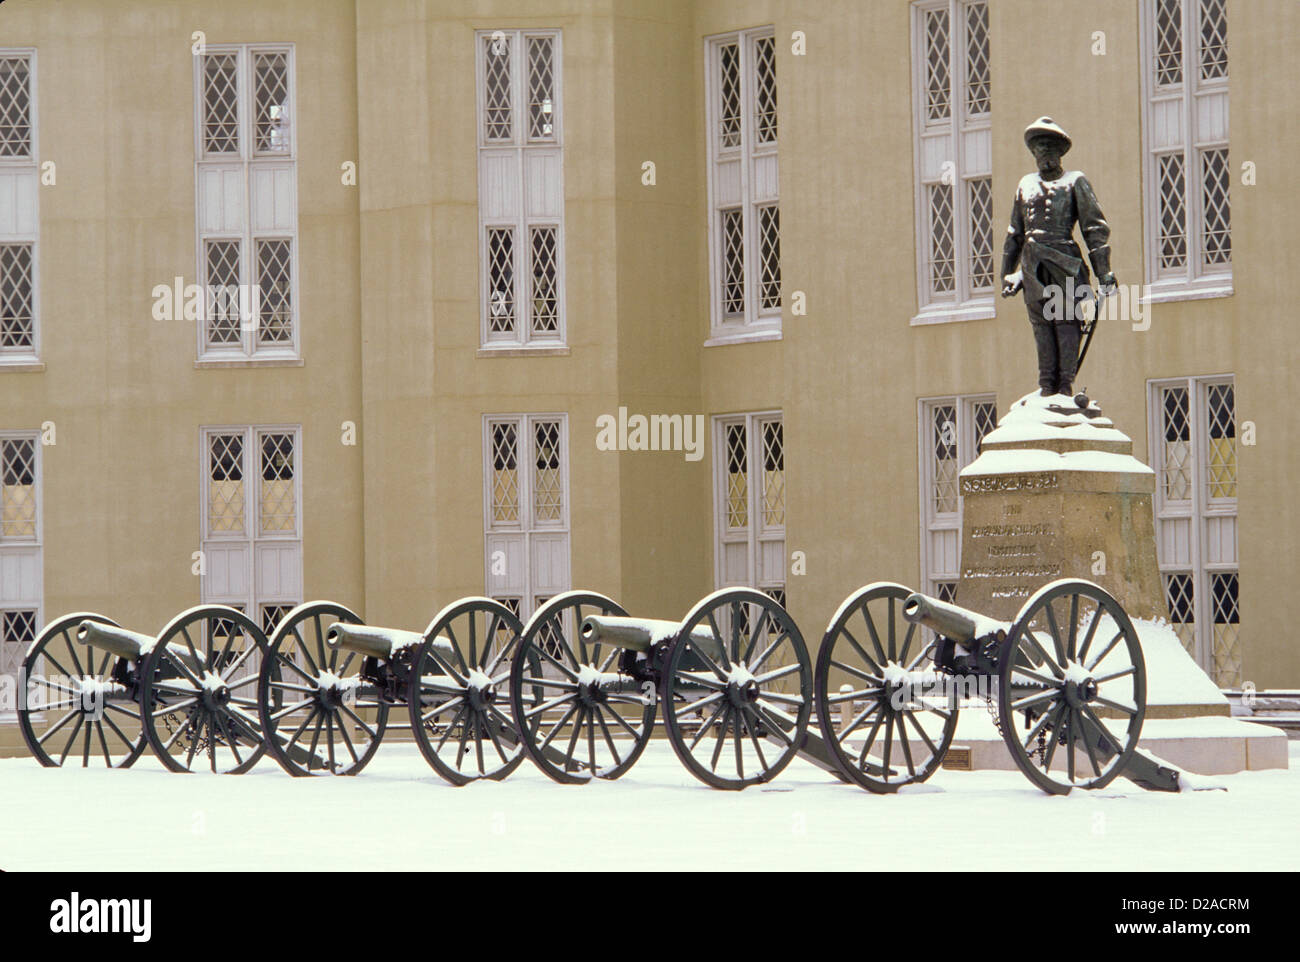 Virginia, Lexington. Stonewall Jackson Statue And Cannons At Virginia Military Institute. - Stock Image